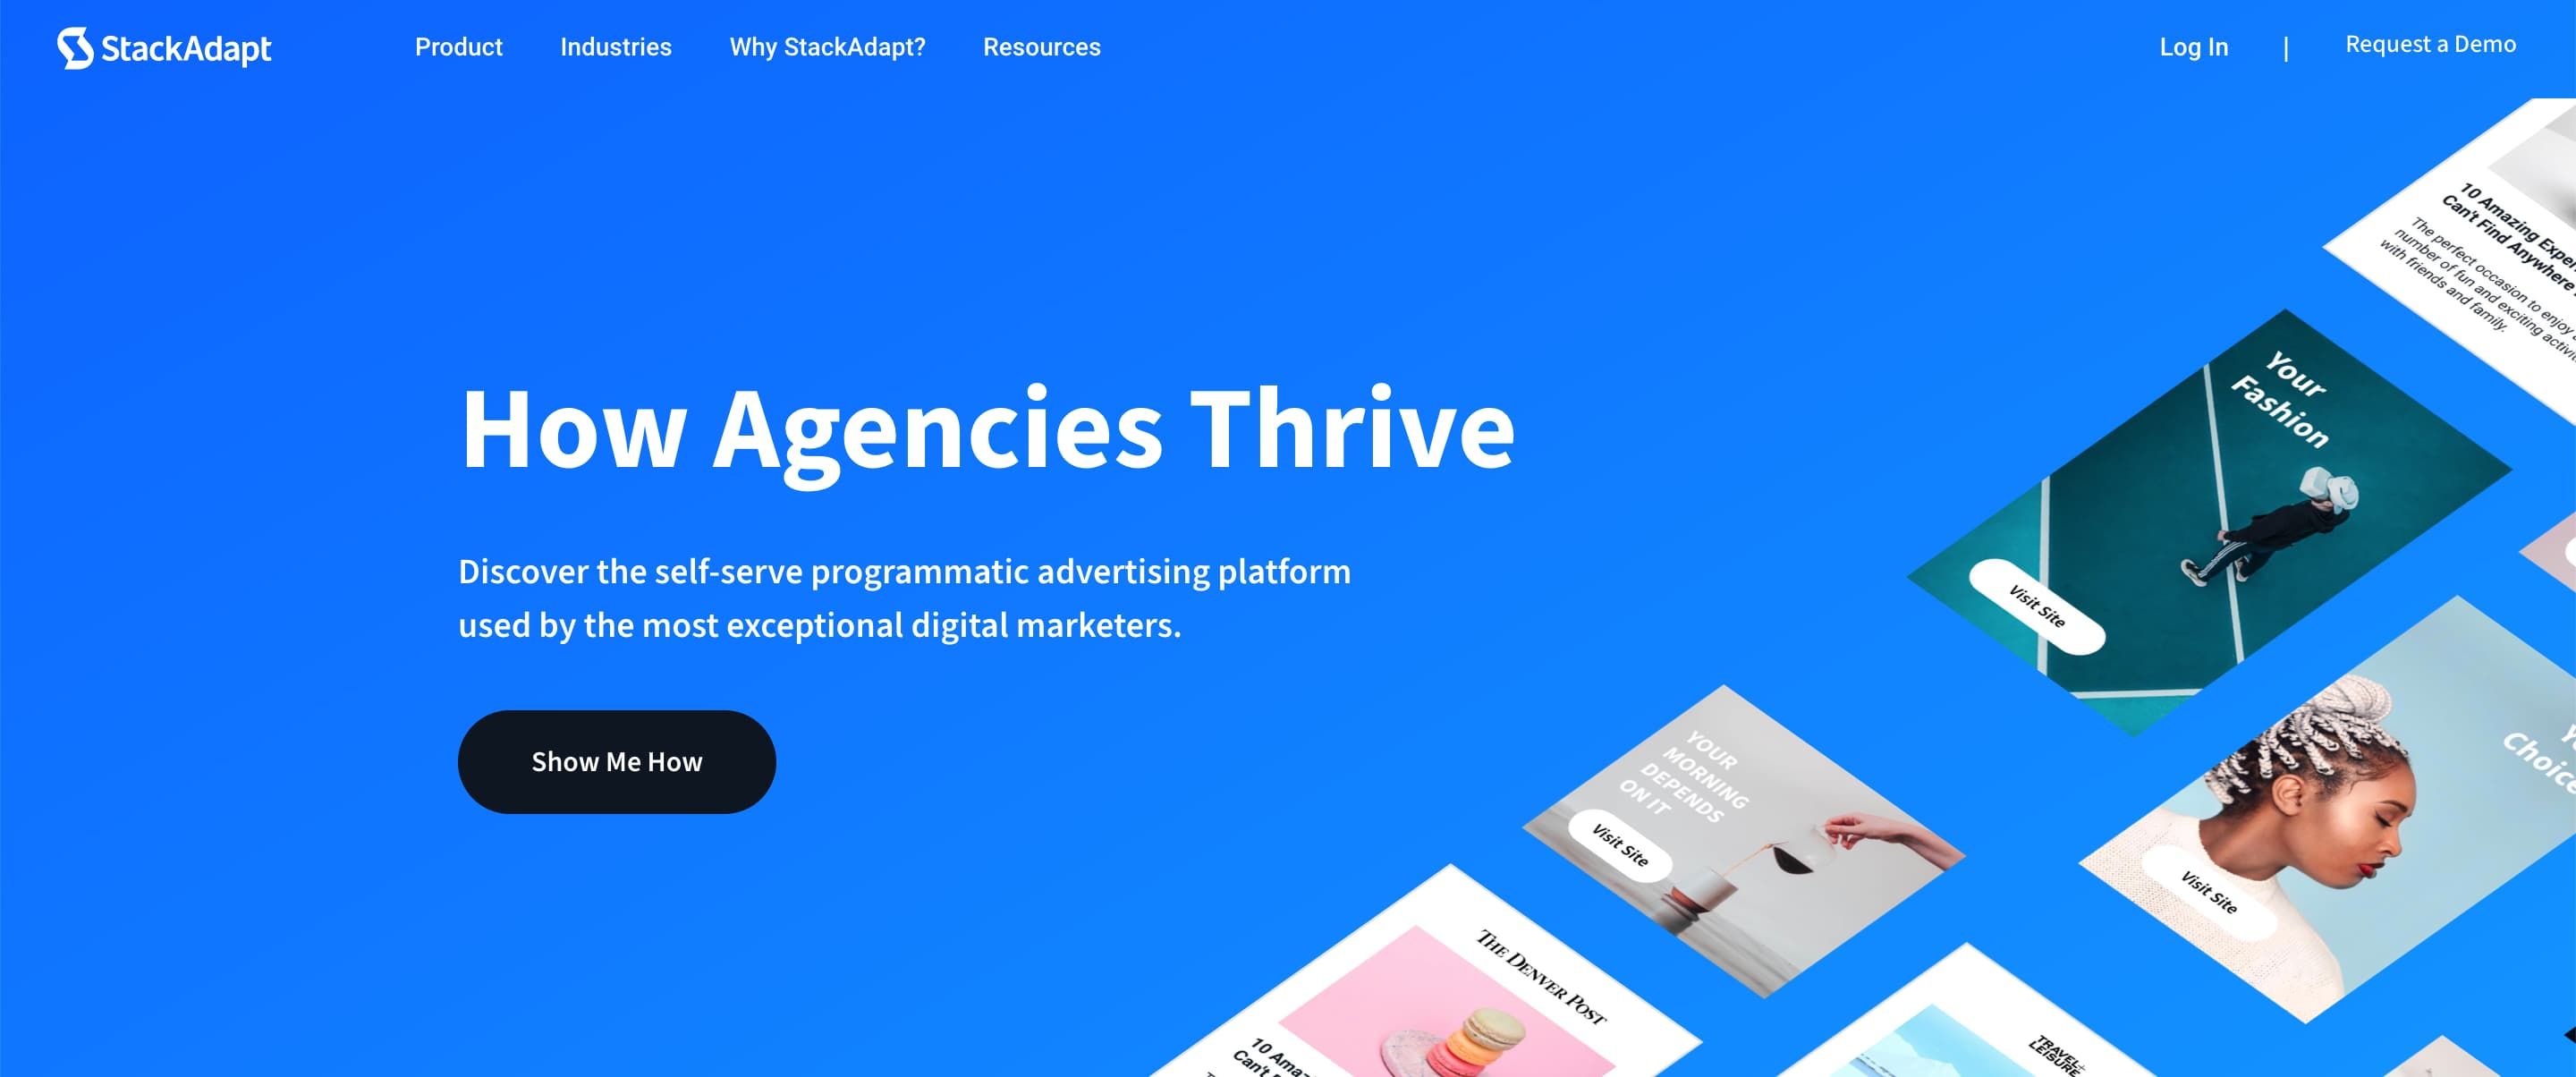 stackadapt advertising management tool example